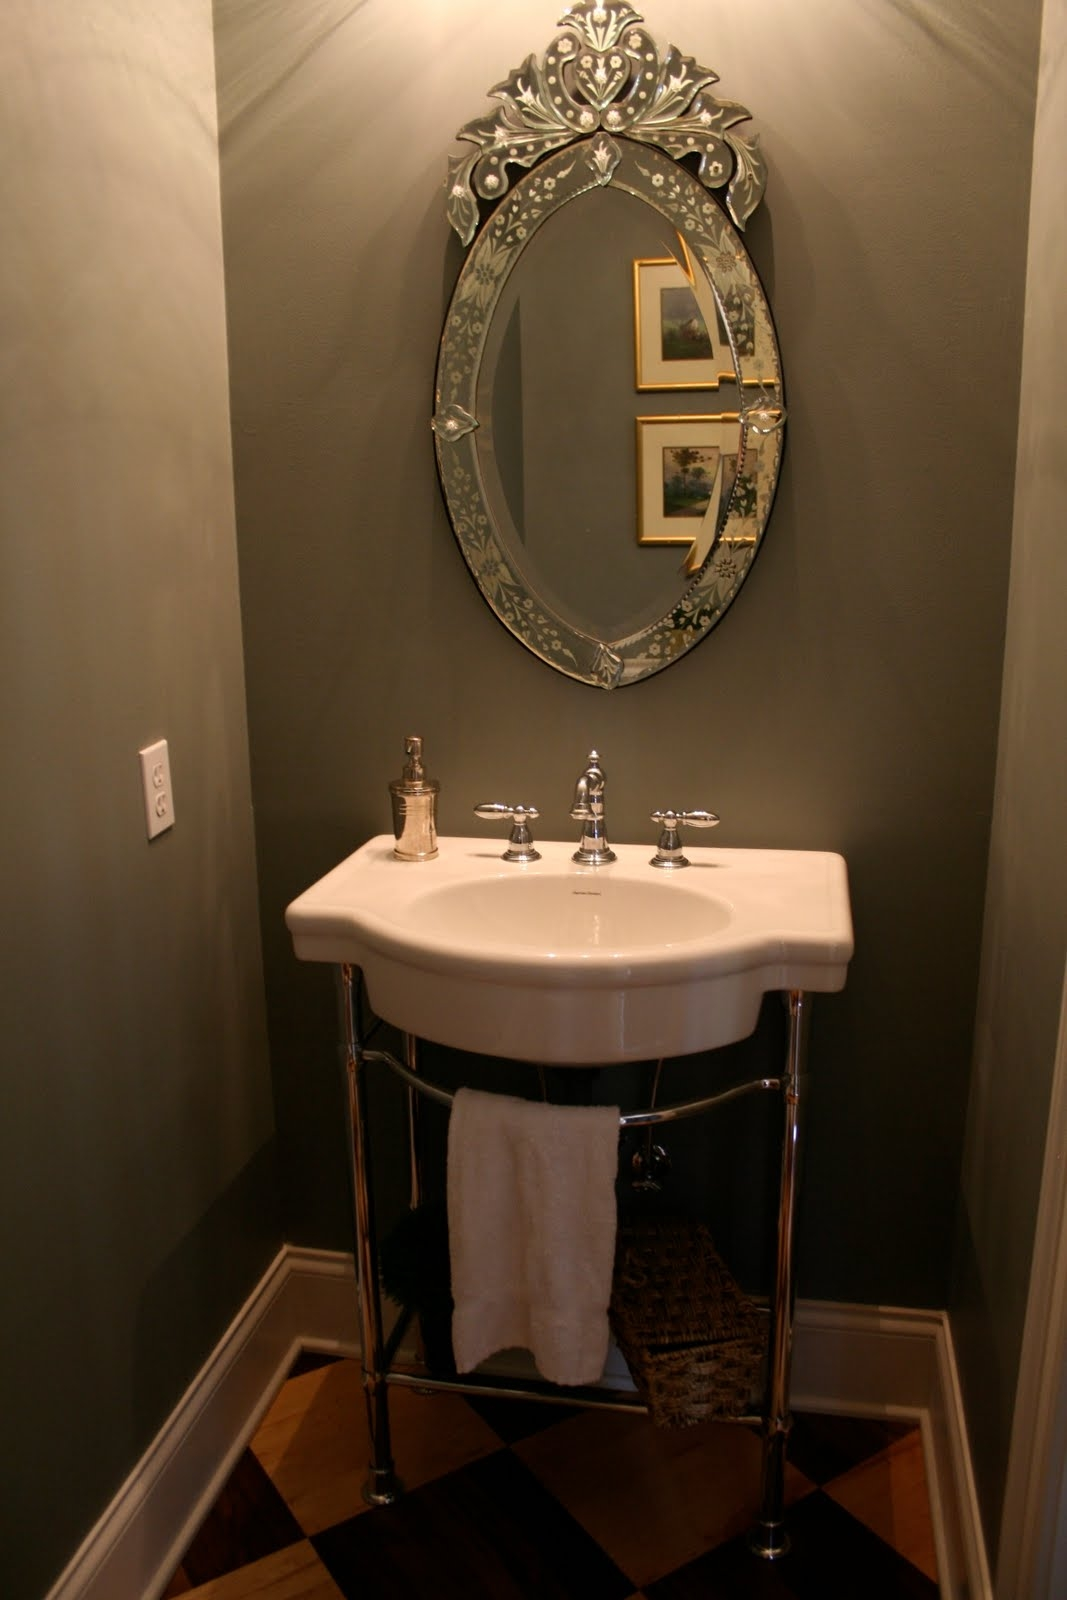 Victorian Style Bathroom Mirrors Within Victorian Style Mirrors For Bathrooms (Image 15 of 15)